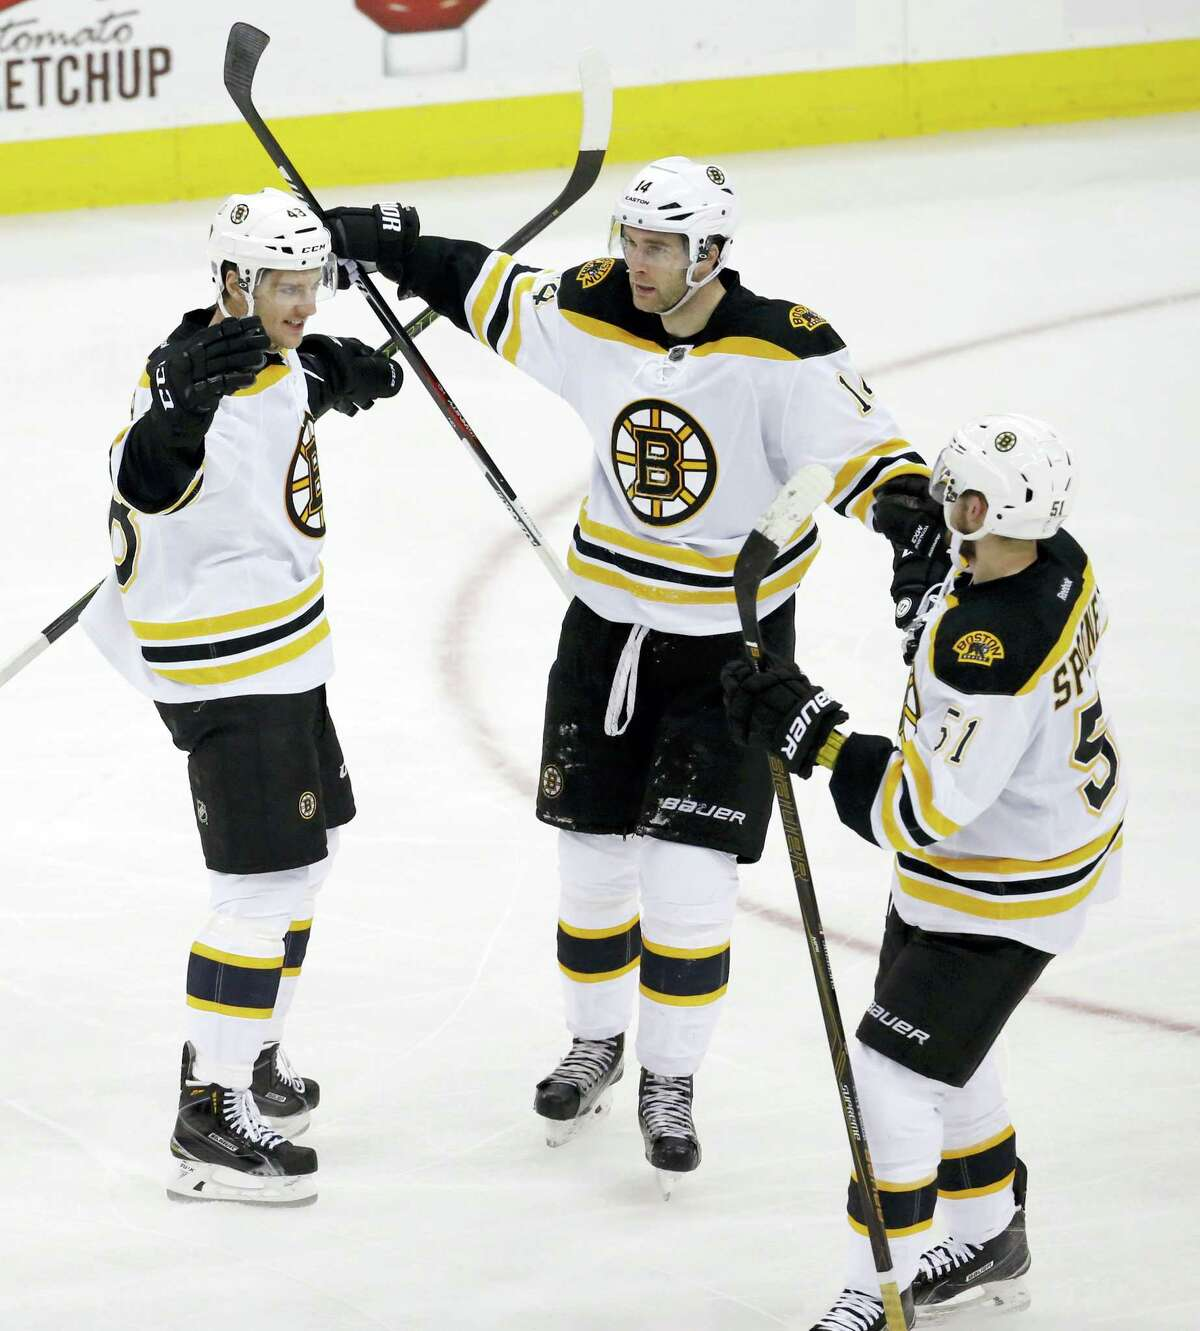 Boston Bruins' Colin Miller, left, Brett Connolly, center, and Ryan Spooner celebrate a goal by Miller against the New Jersey Devils during the third period of an NHL hockey game, Friday, Jan. 8, 2016, in Newark, N.J. The Bruins won 4-1. (AP Photo/Julio Cortez)